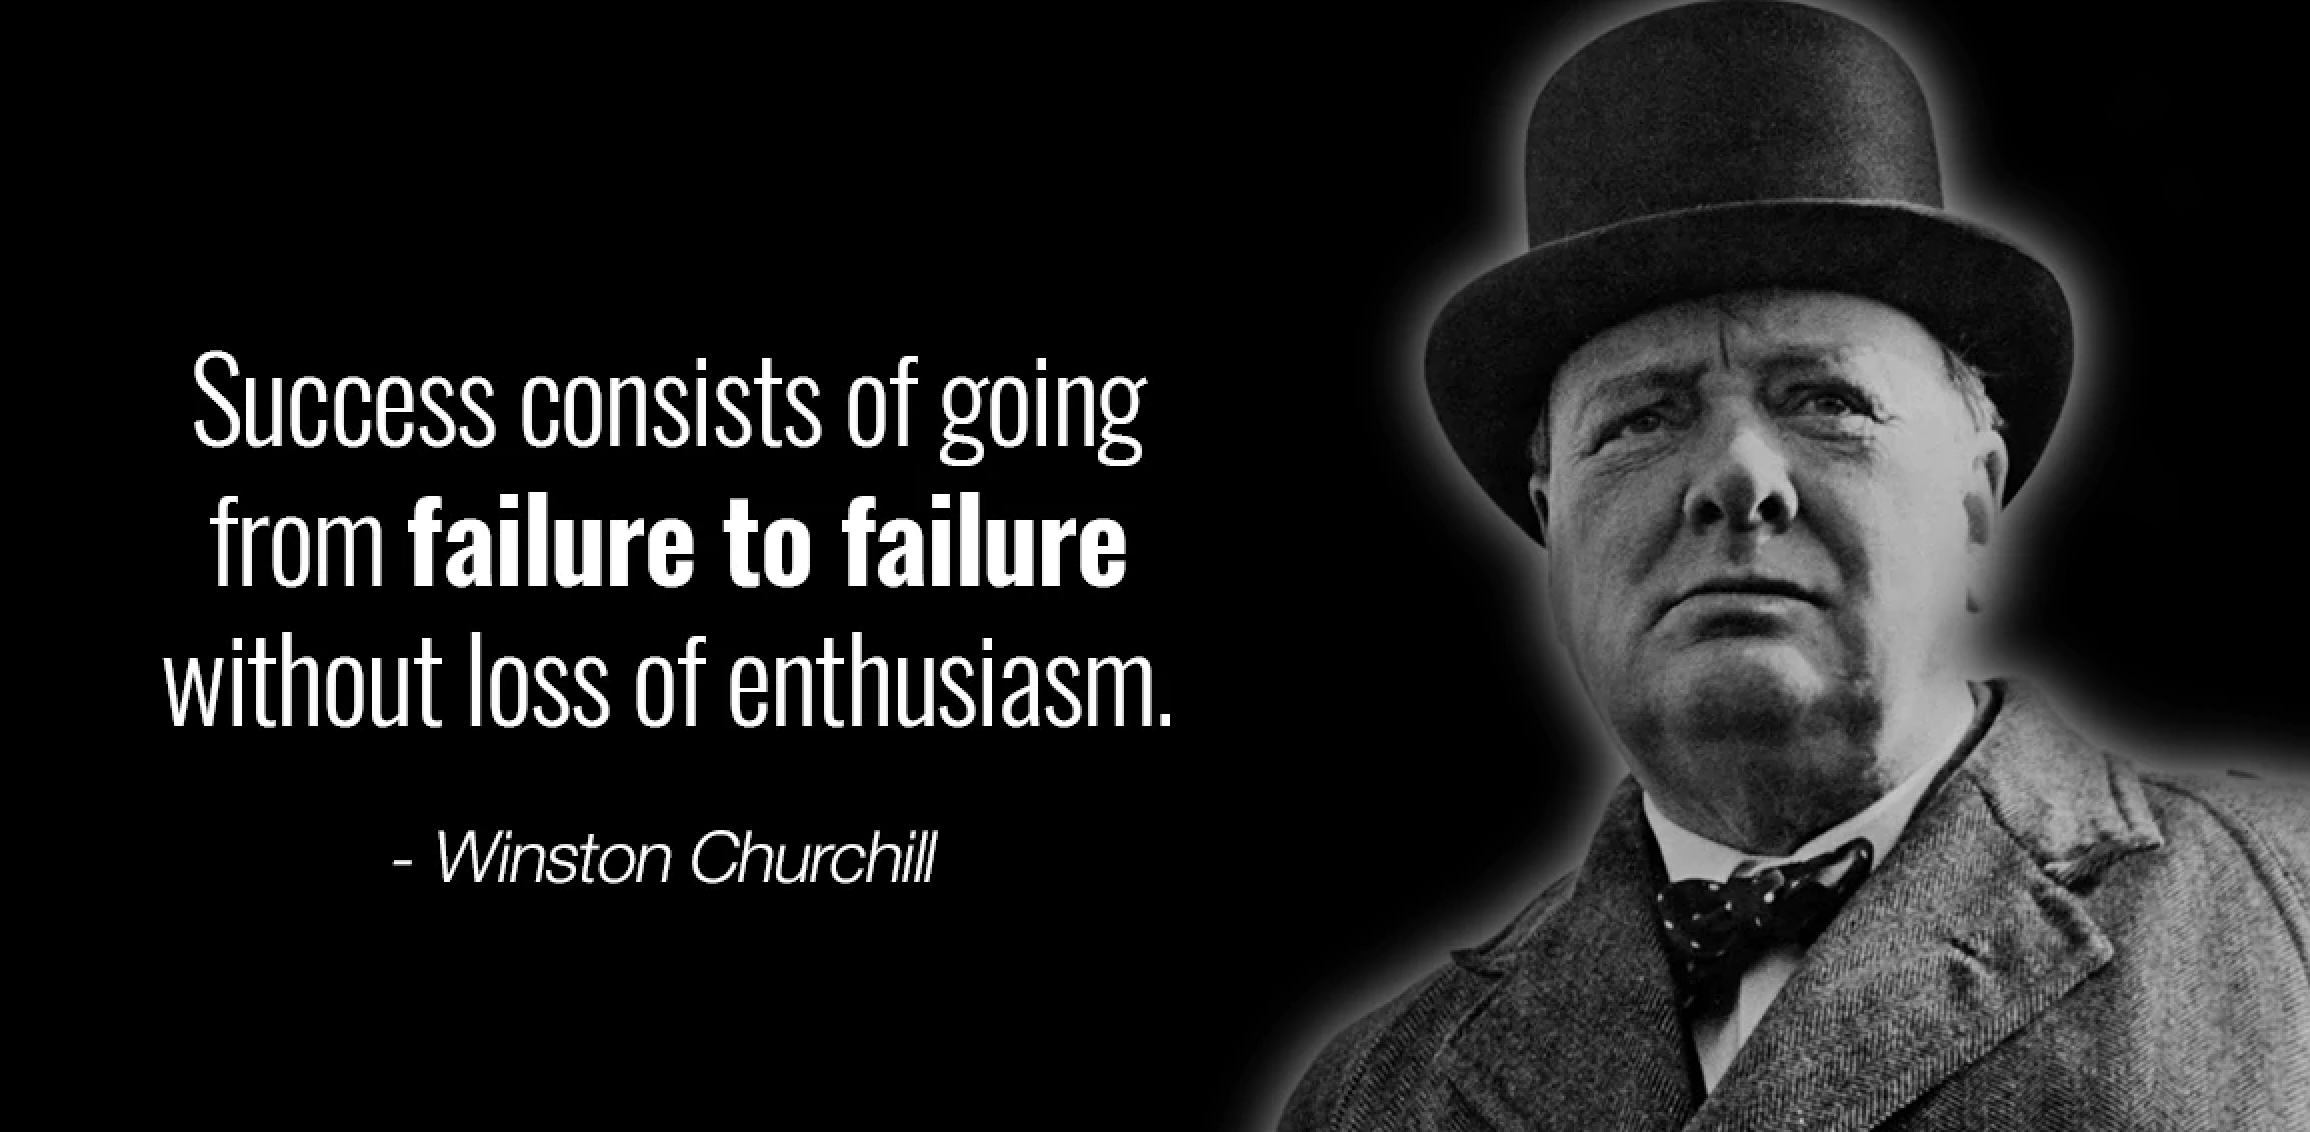 [Image] Success is going from failure to failure without losing your enthusiasm.